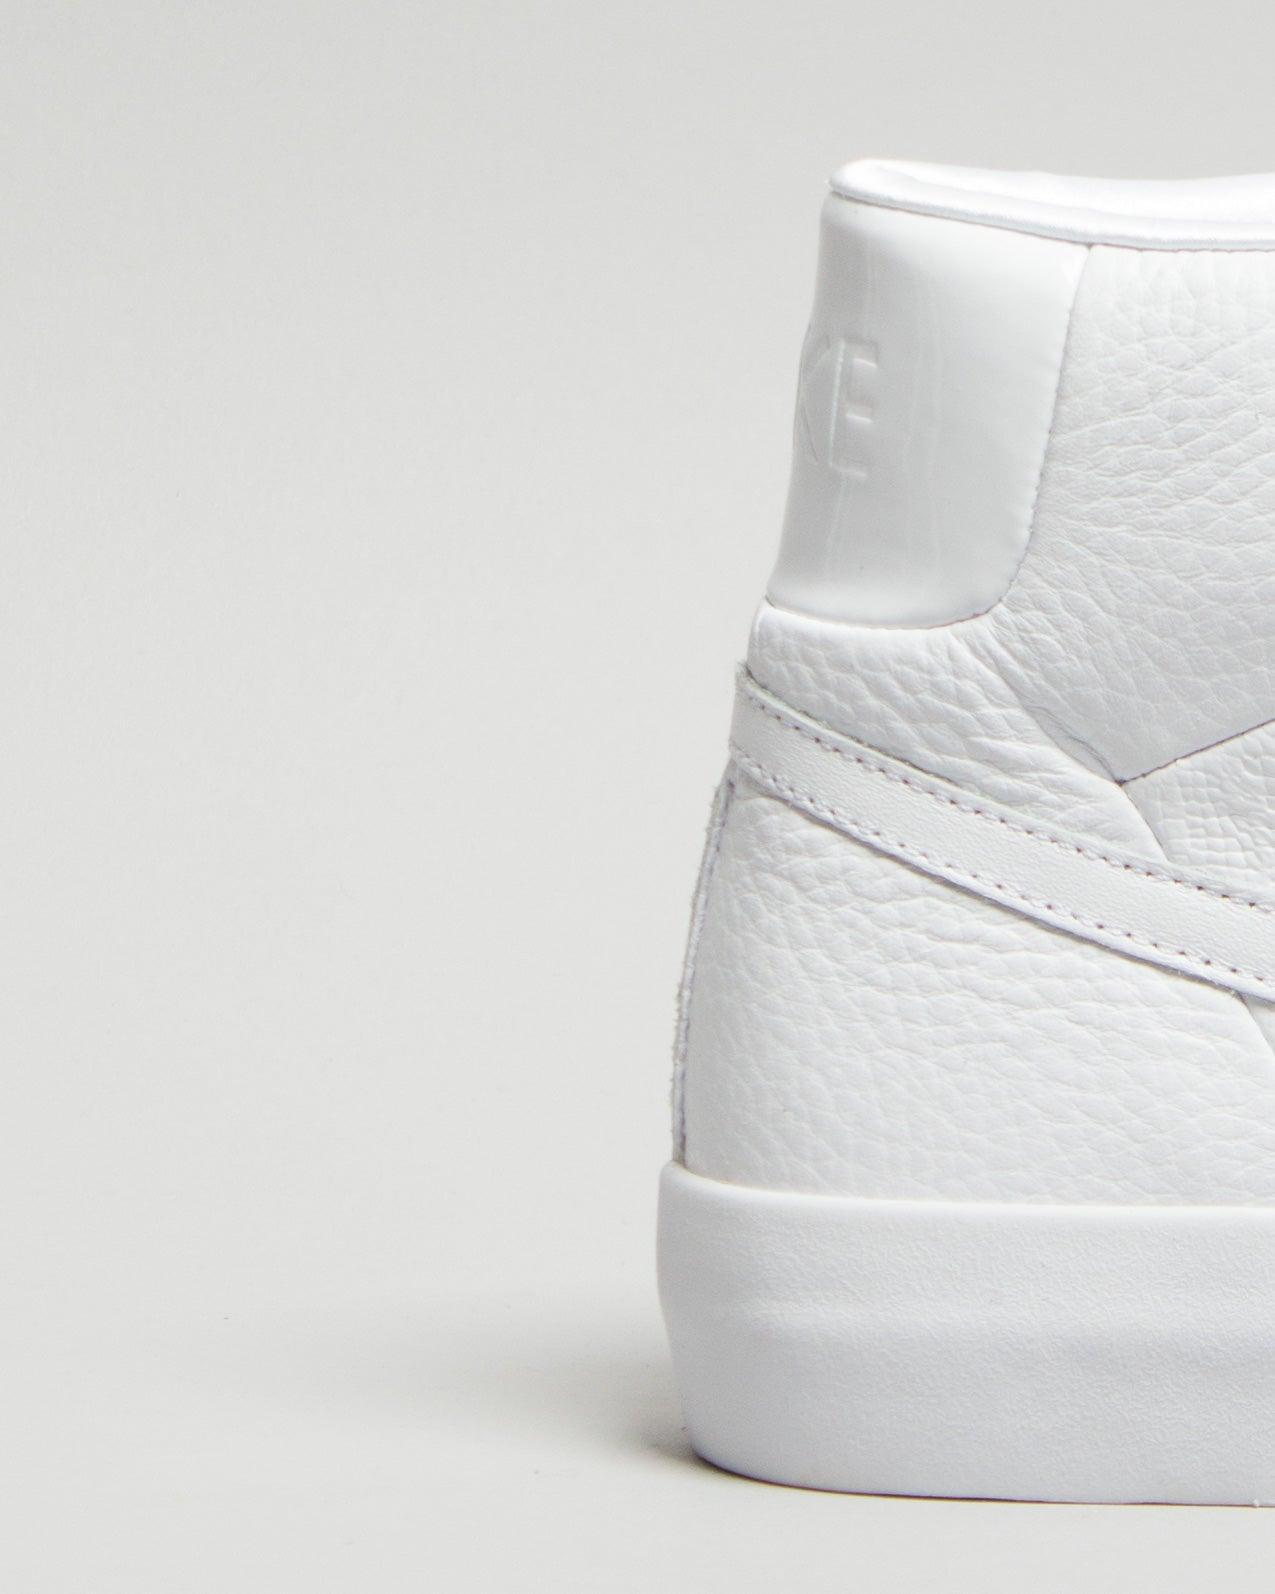 Blazer Royal QS White/White/White